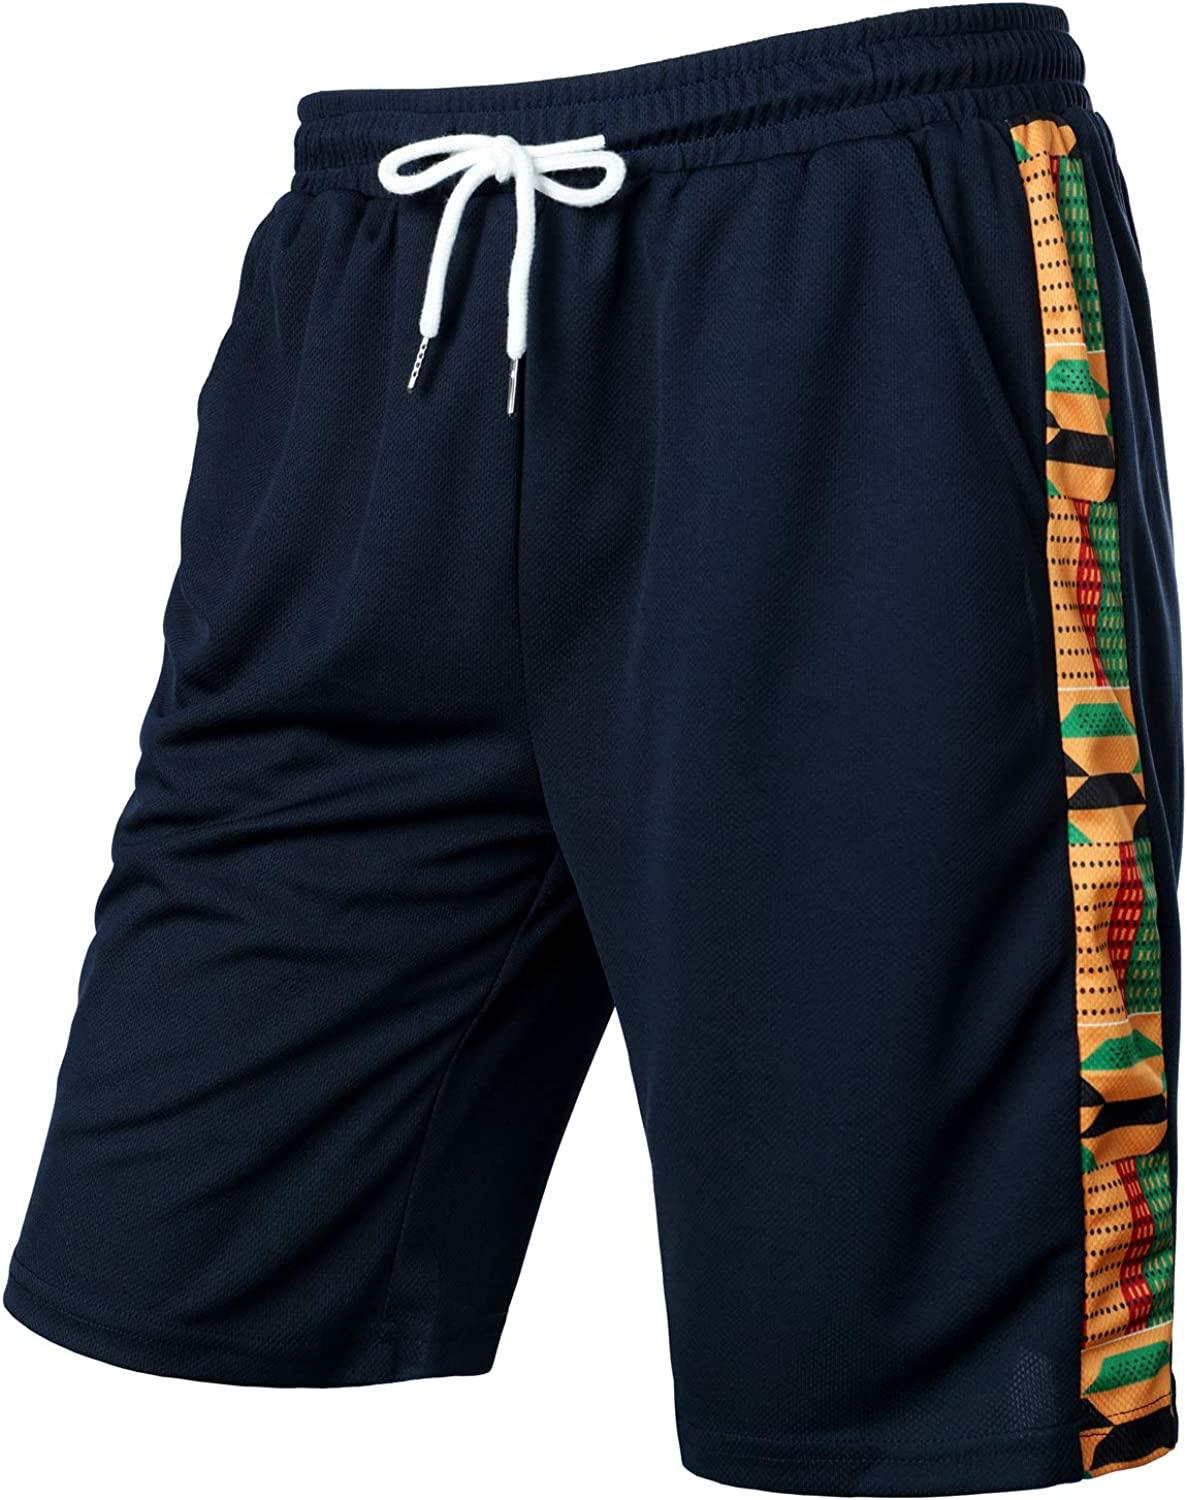 LucMatton Direct sale of manufacturer Men's Courier shipping free African Print Mesh Workout Quick Dry Bas Running